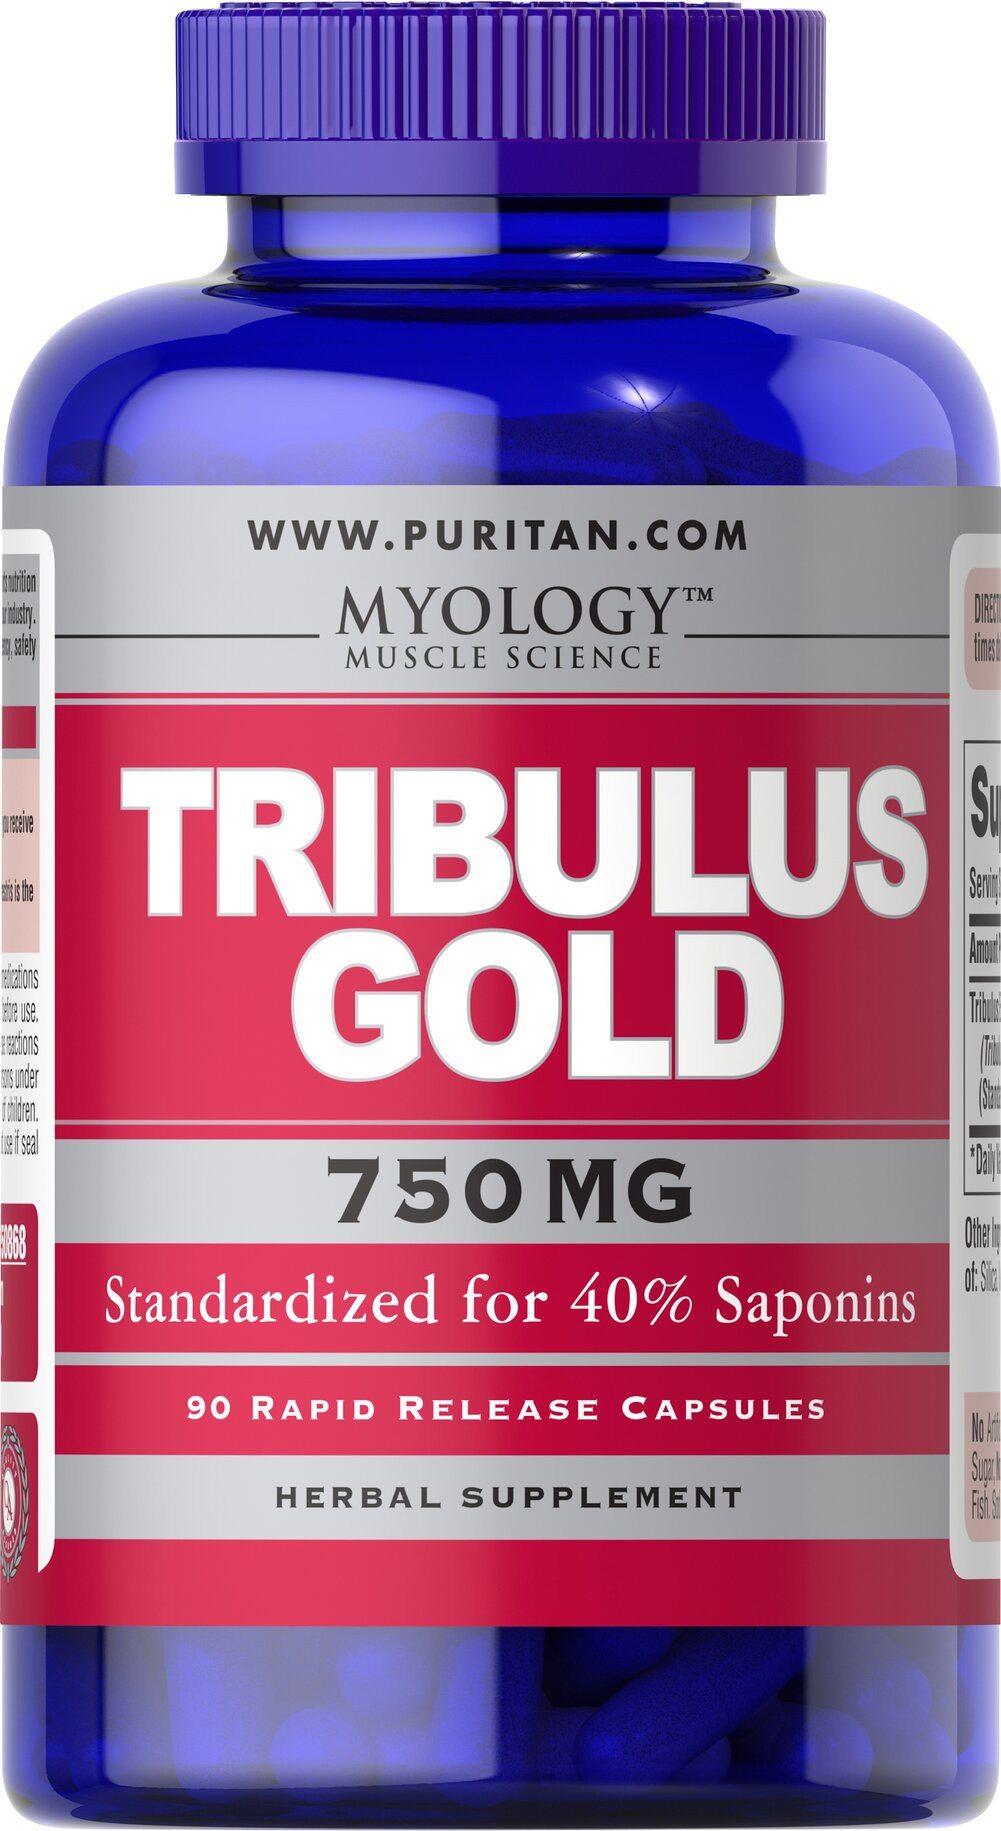 Tribulus Gold Standardized Extract 750 mg  90 Capsules 750 mg $17.99